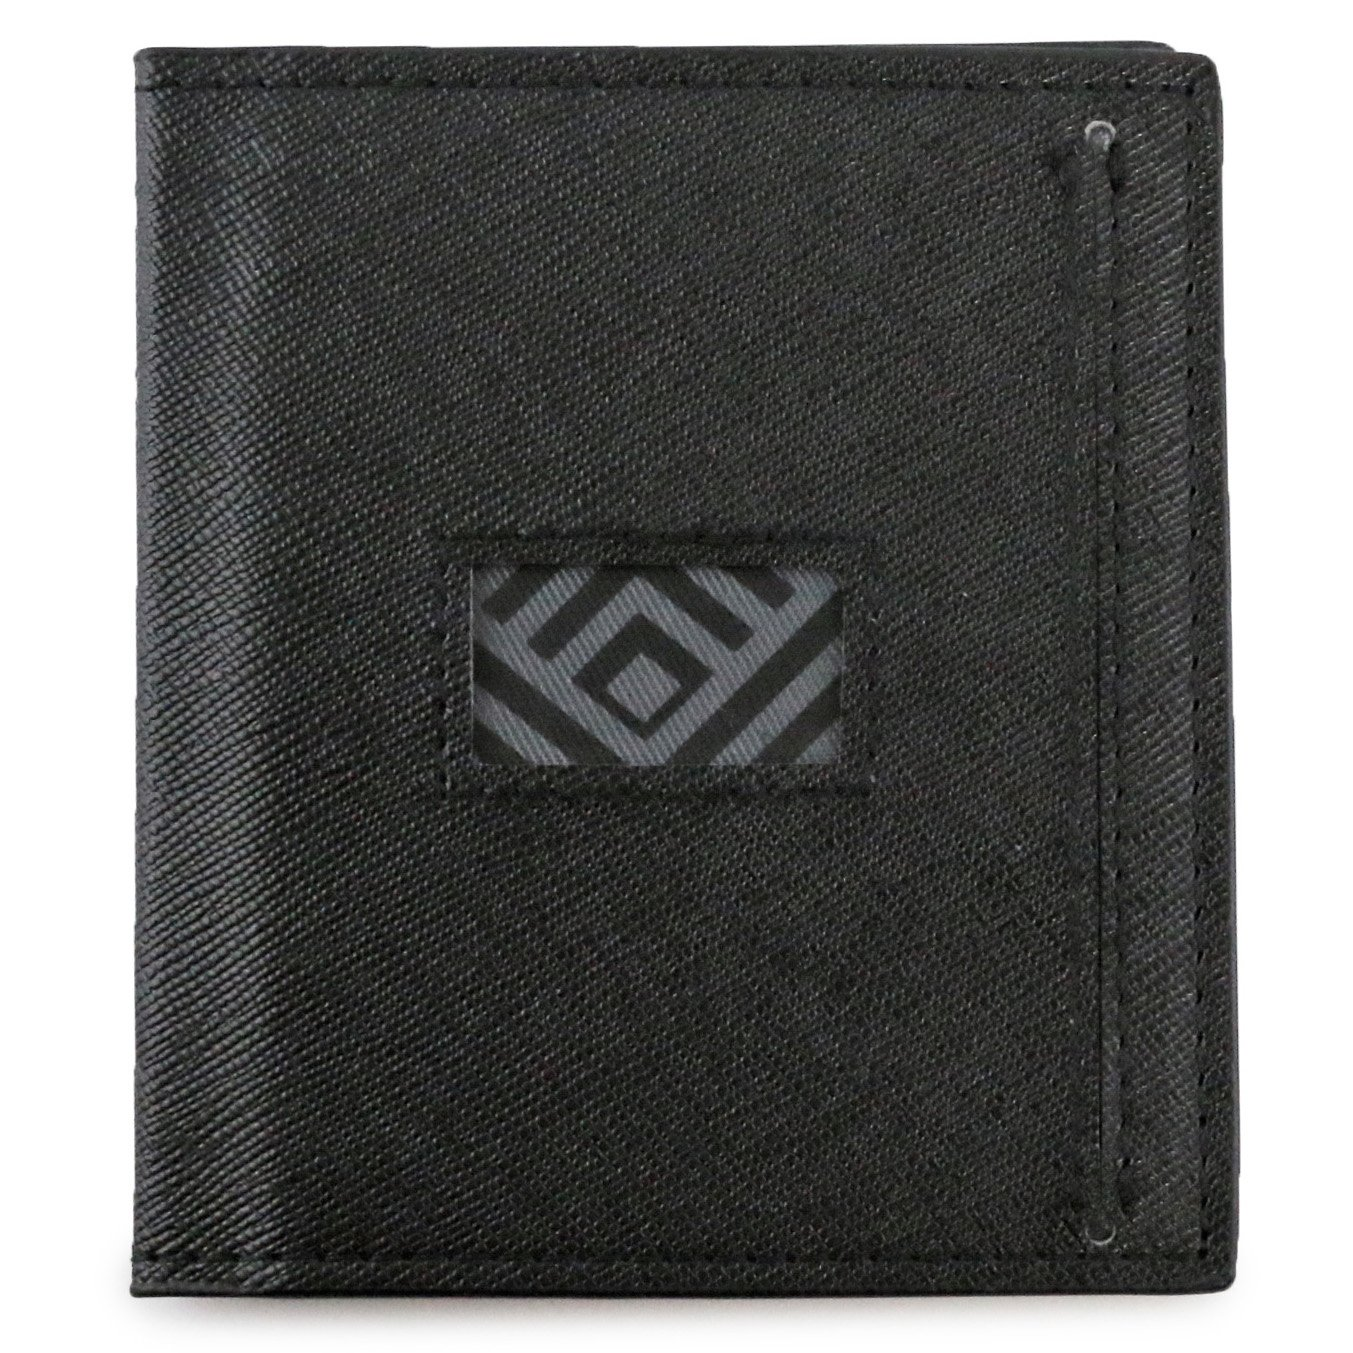 DASH Co. Access Bifold Wallet - Slim, Easy access to cash, Quickdraw Slot, RFID